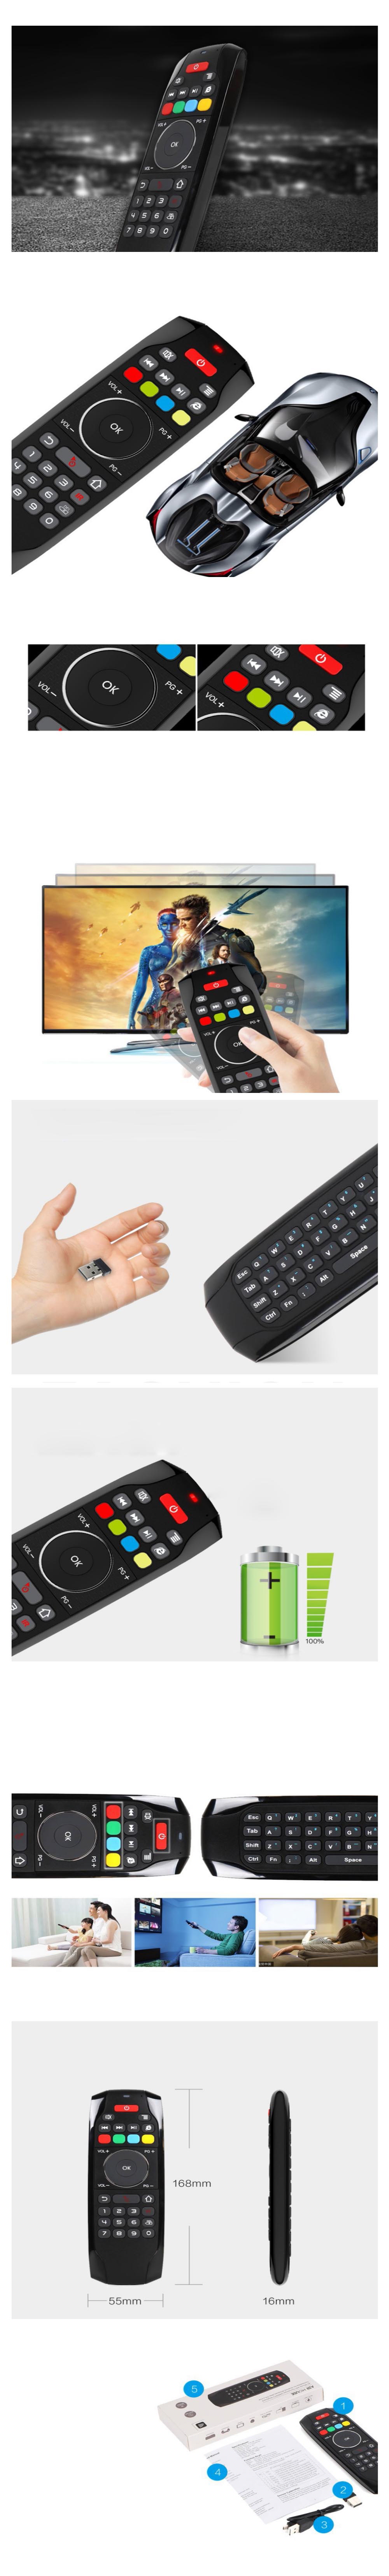 G7 2.4G Mini Keyboard Air Mouse 5-key Learning Double-sided Remote Controller